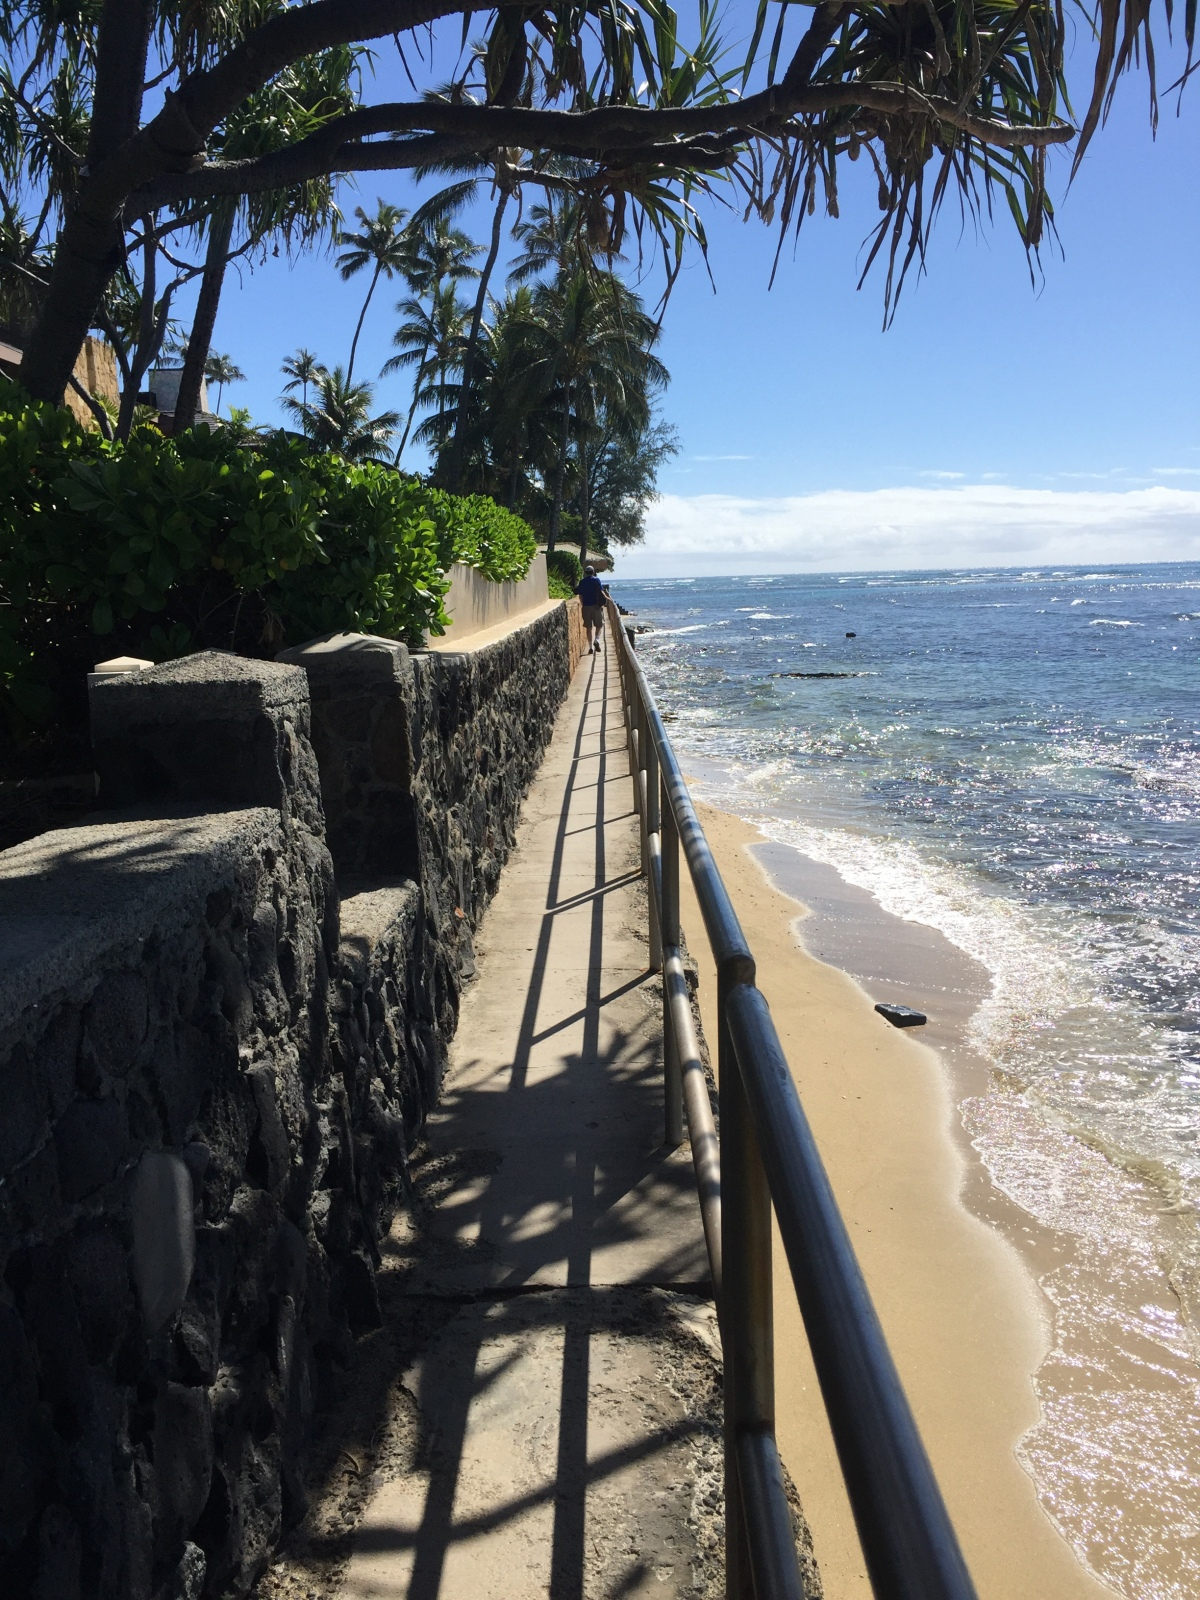 Honolulu – Diamond Head and Waikiki